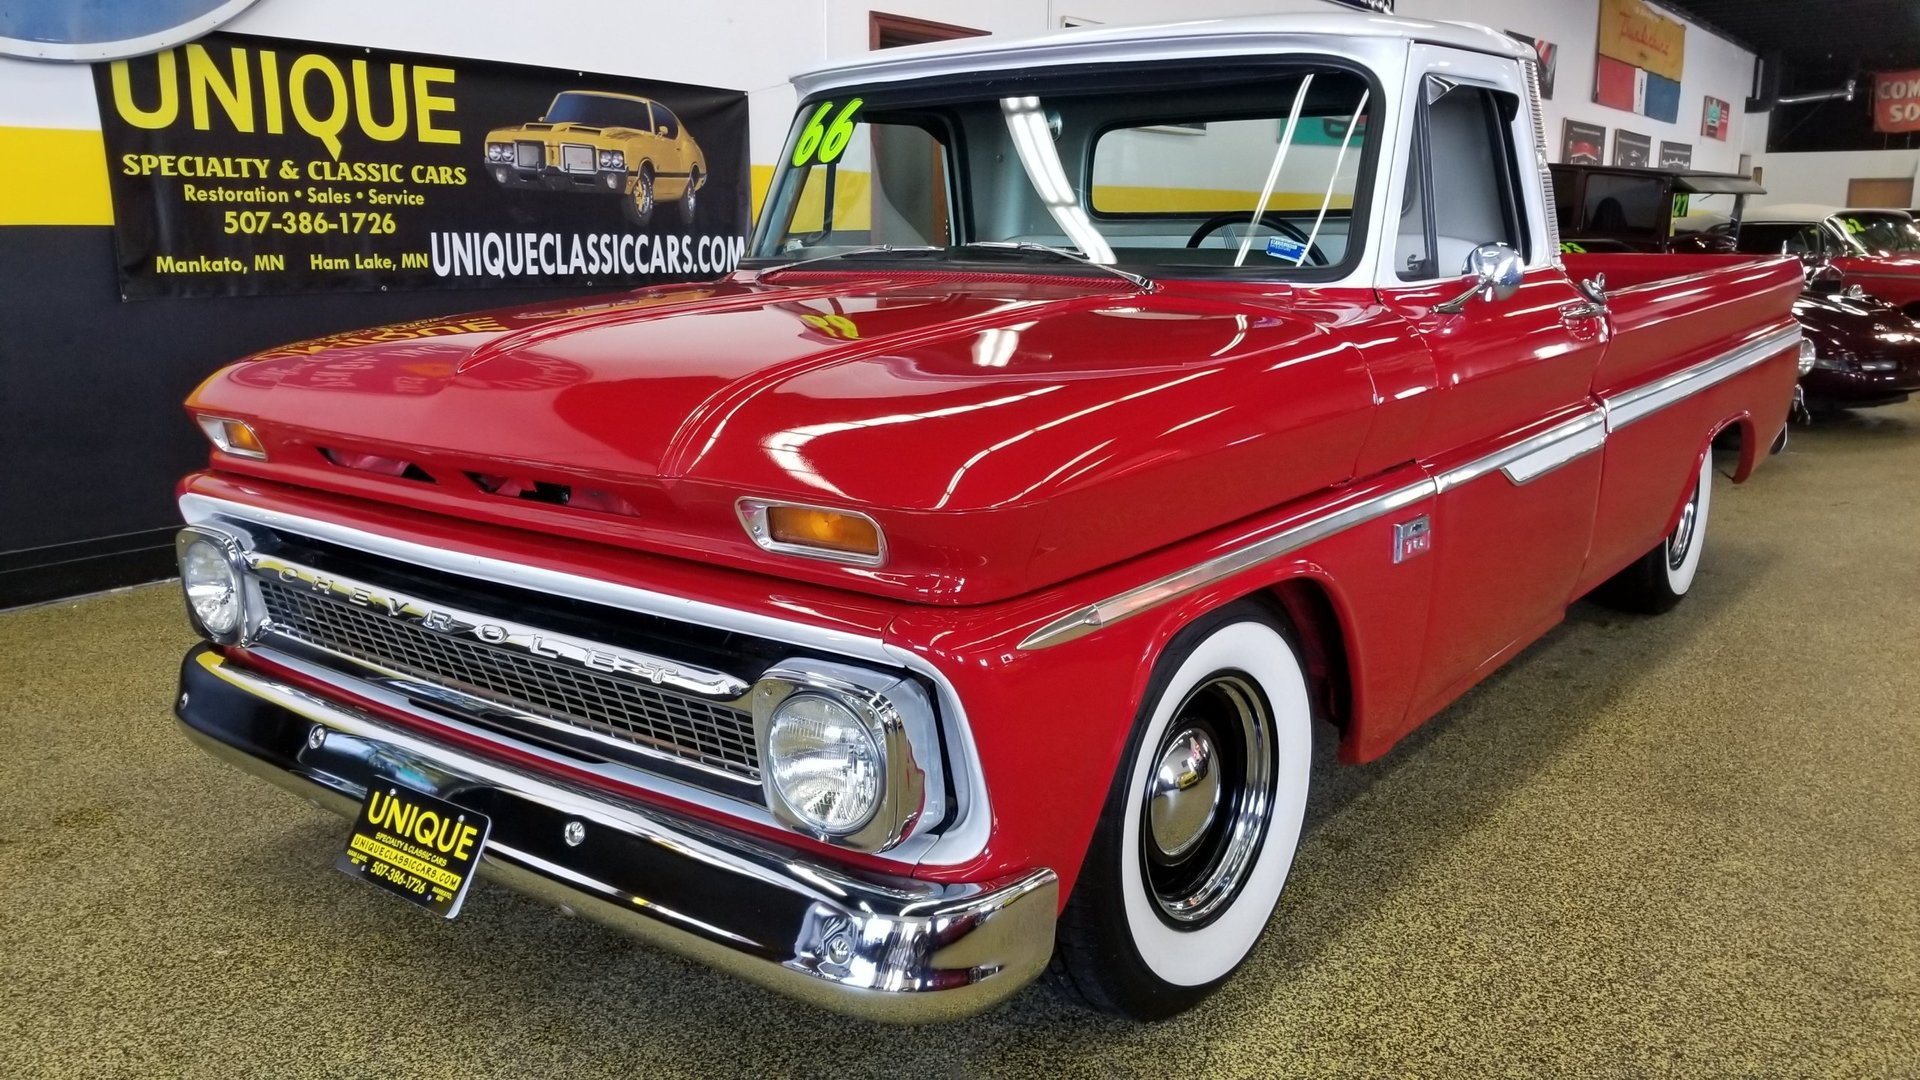 1966 Chevy C10 Pickup Truck For Sale Labzada T Shirt Trucks Chevrolet C 10 Source Unique Specialty Classics